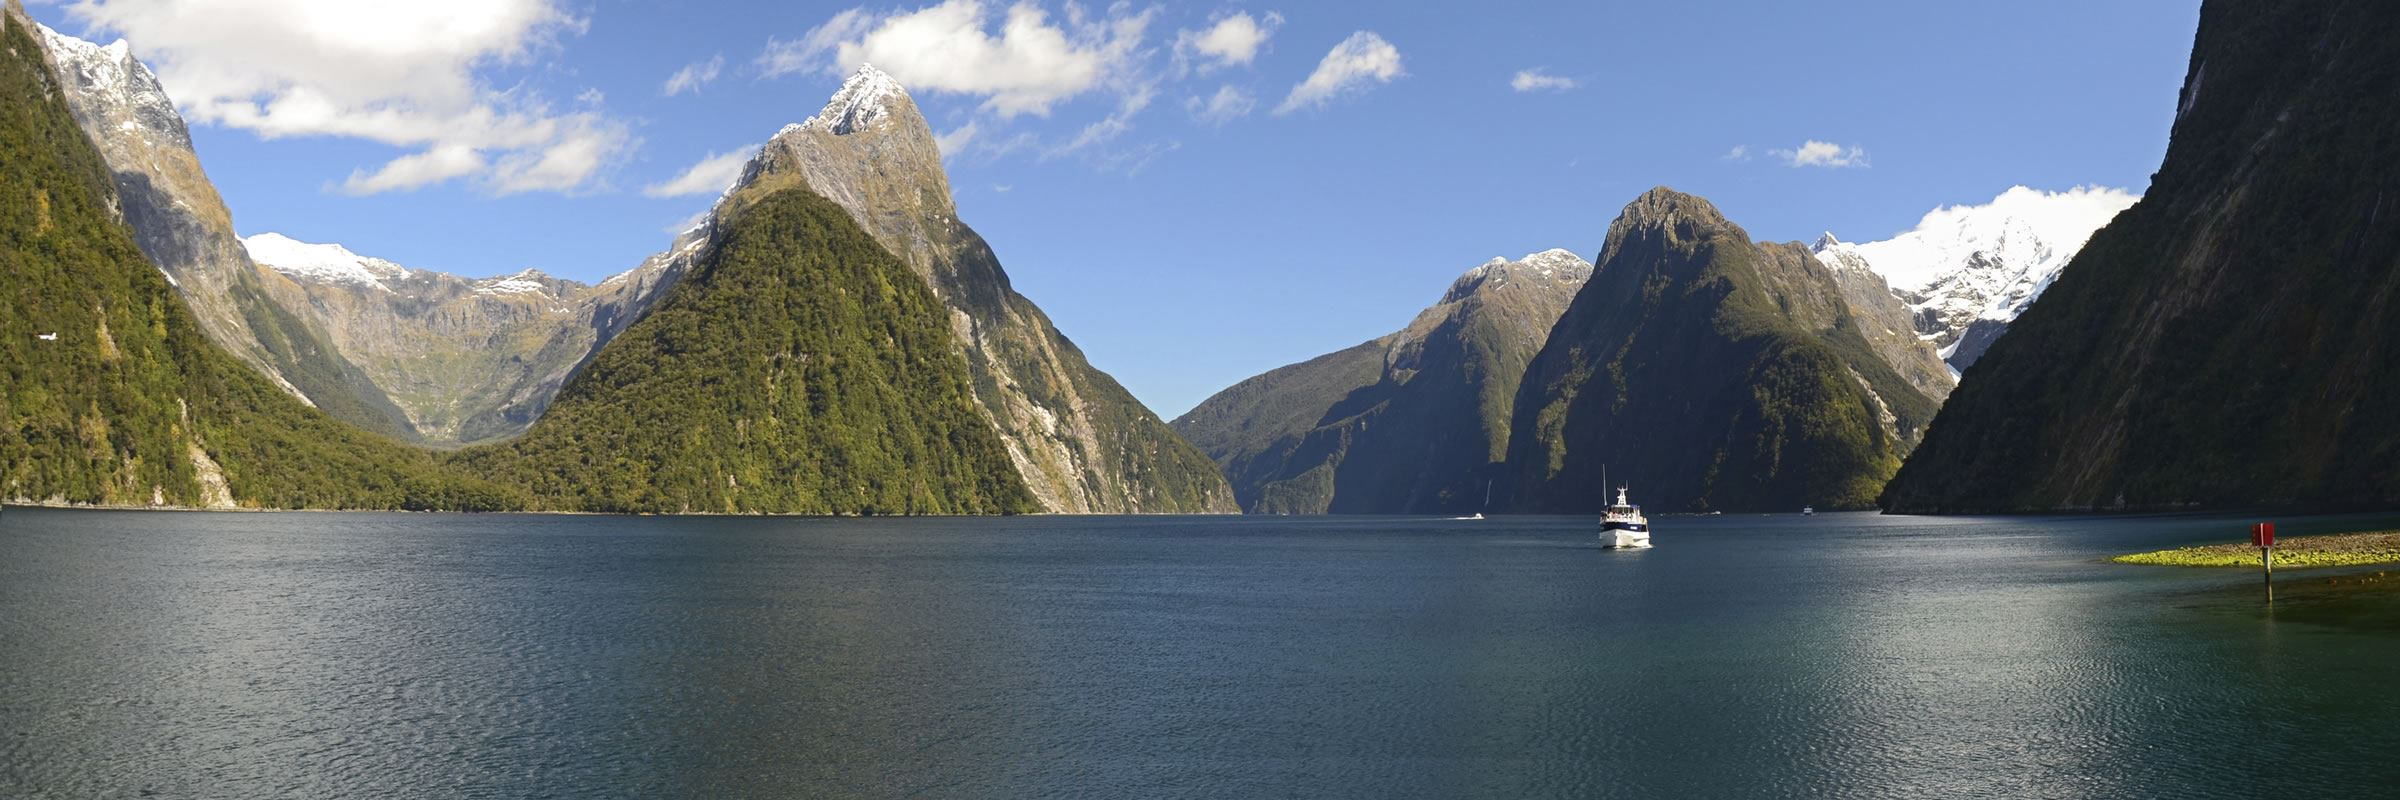 visit milford sound on a trip to new zealand